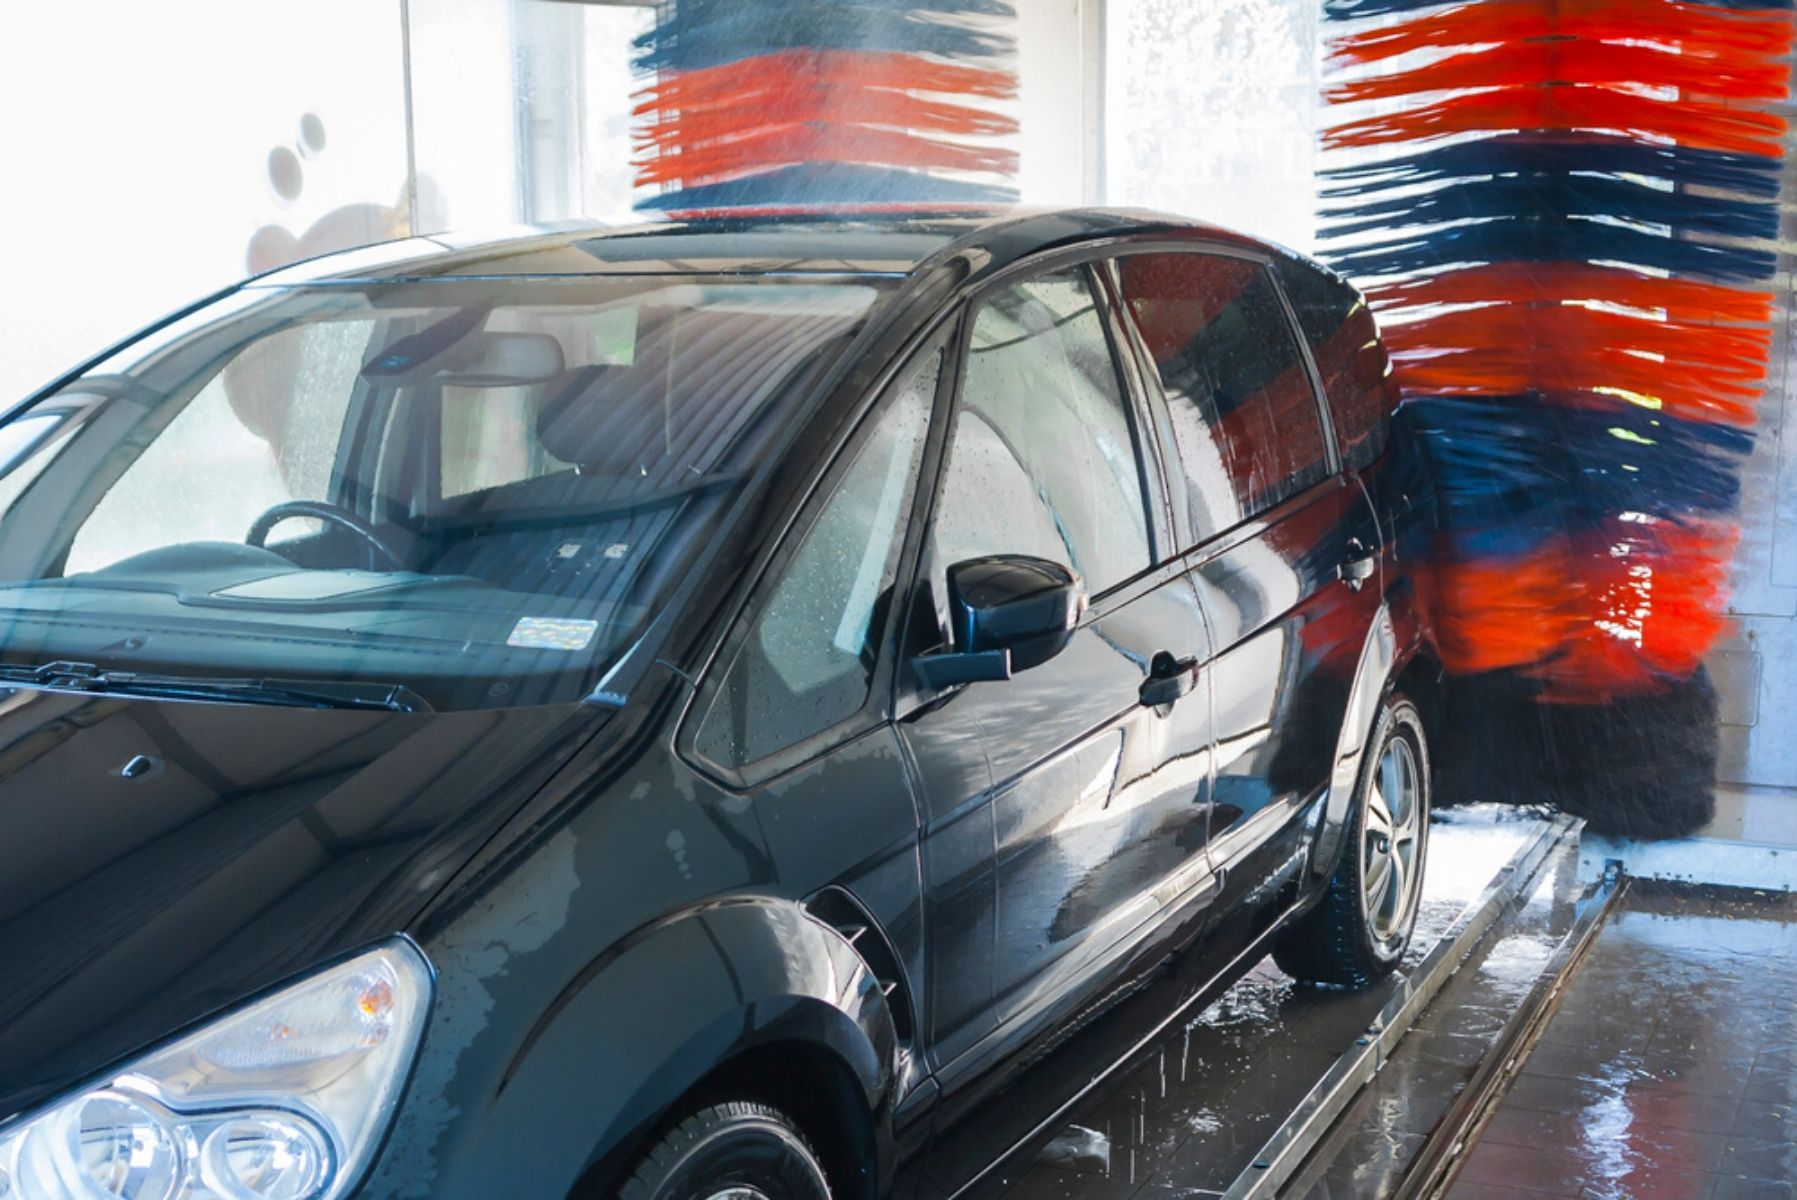 renew car wash cleaner for cstores and fueling locations